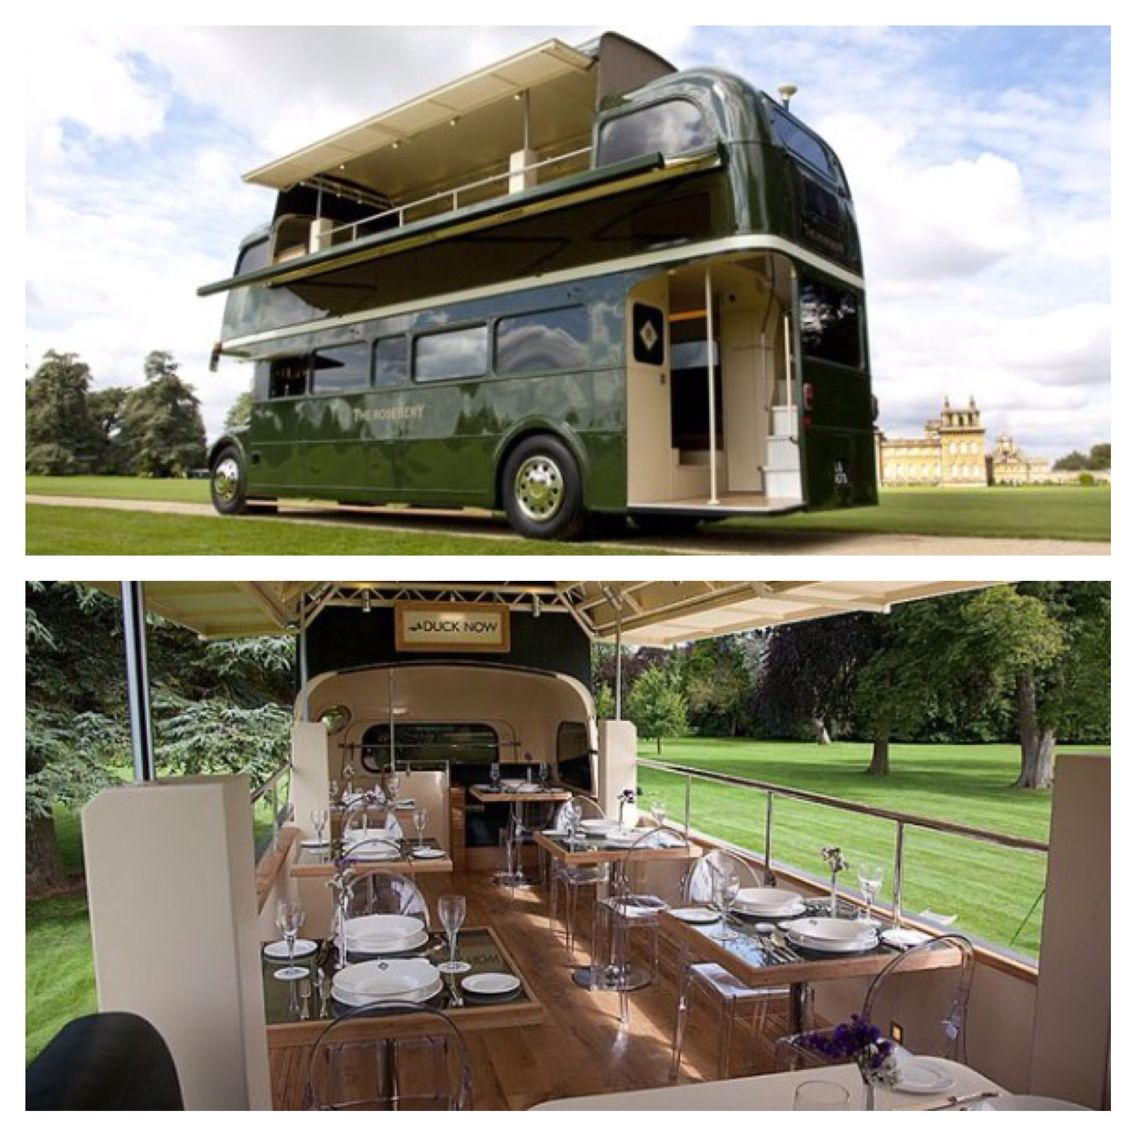 Double decker dining bus the rosebery foodtruck for Motor pool floor plan